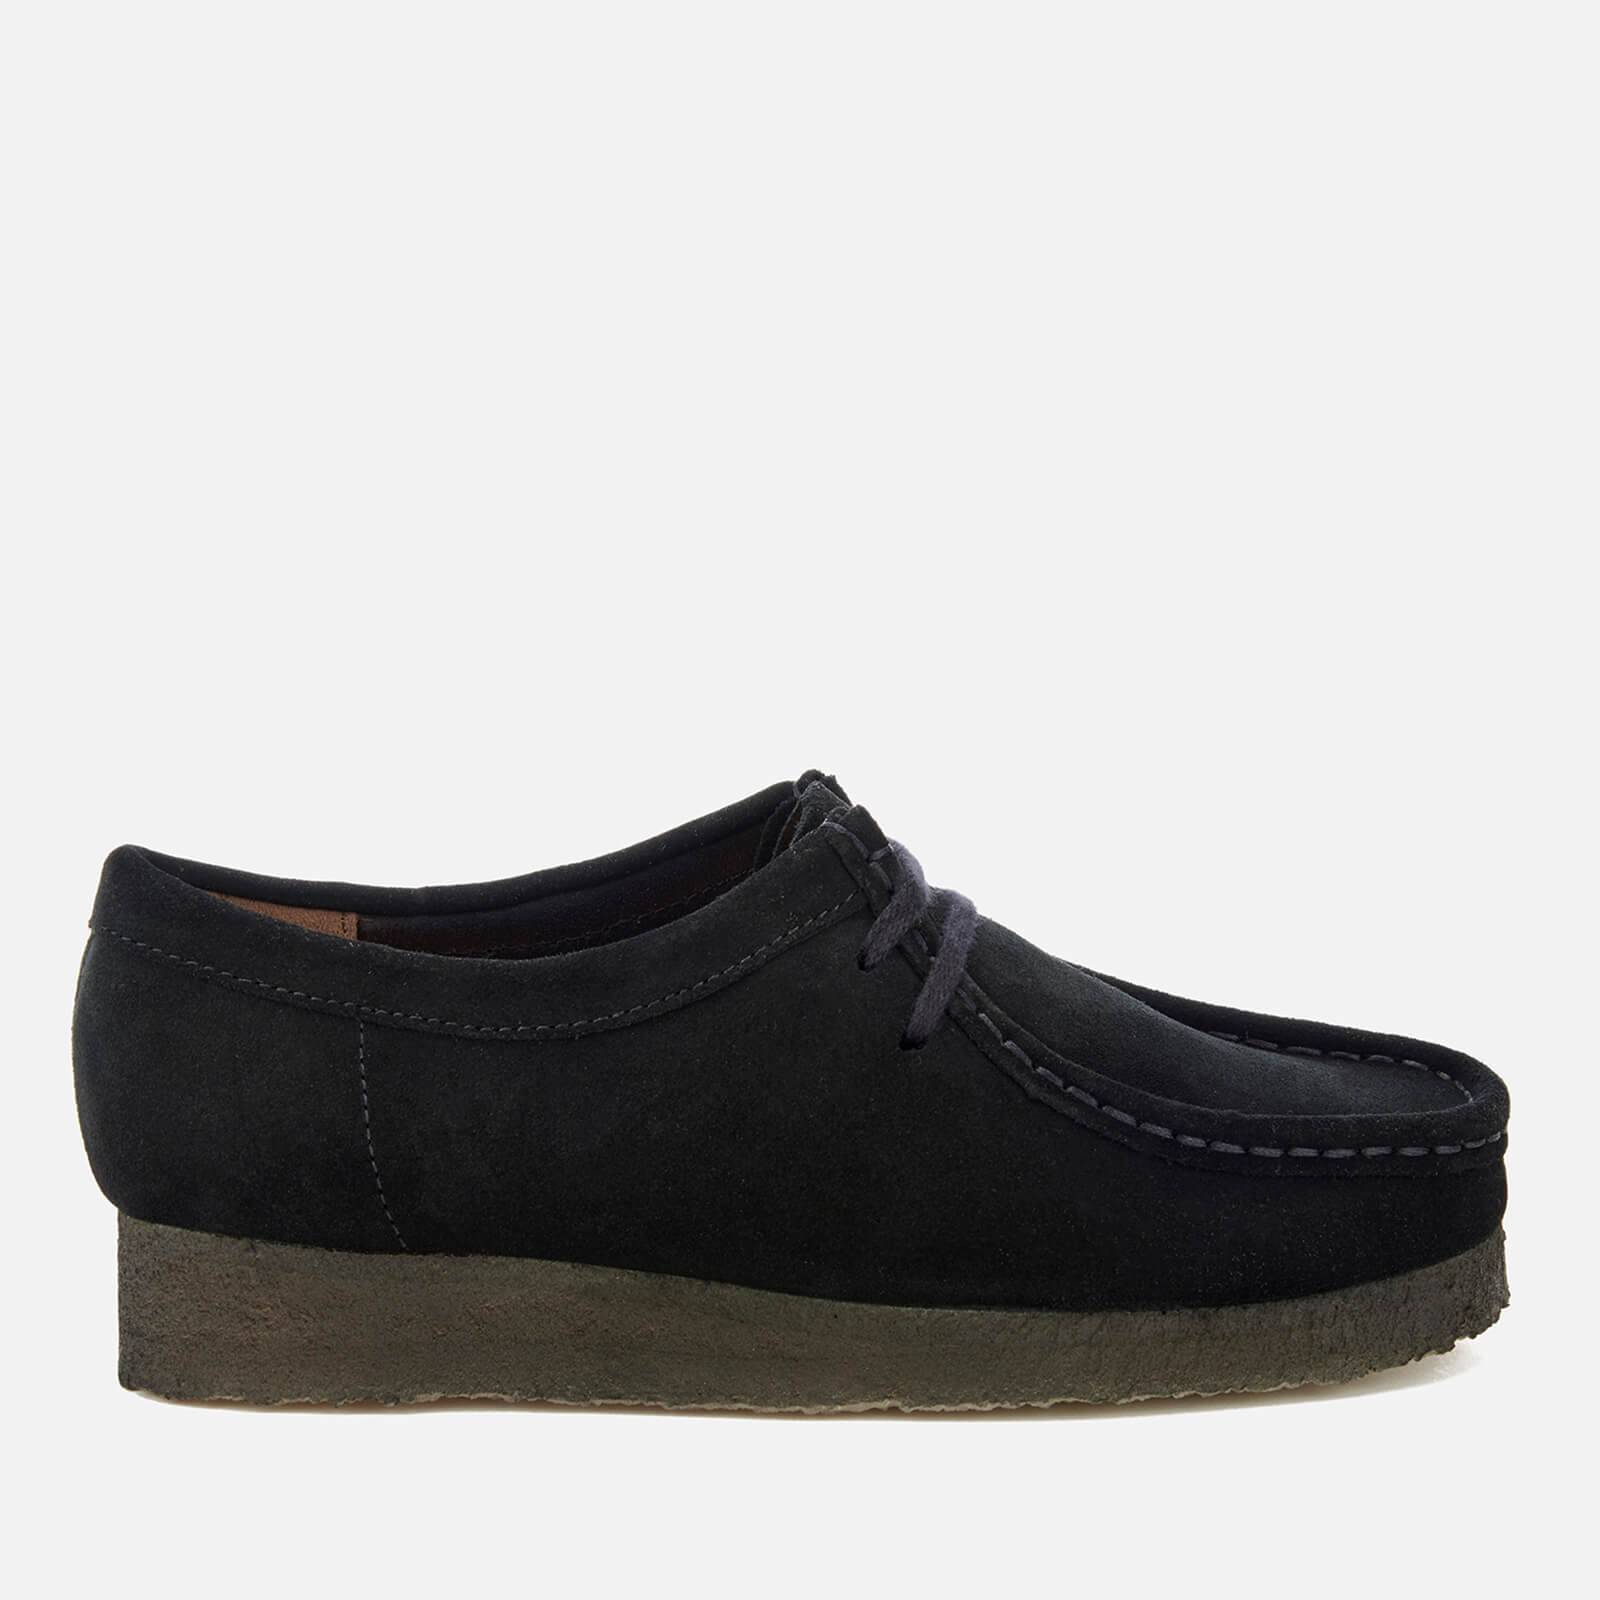 Clarks Originals Women's Wallabee Shoes - Black Suede - UK 5 - Black